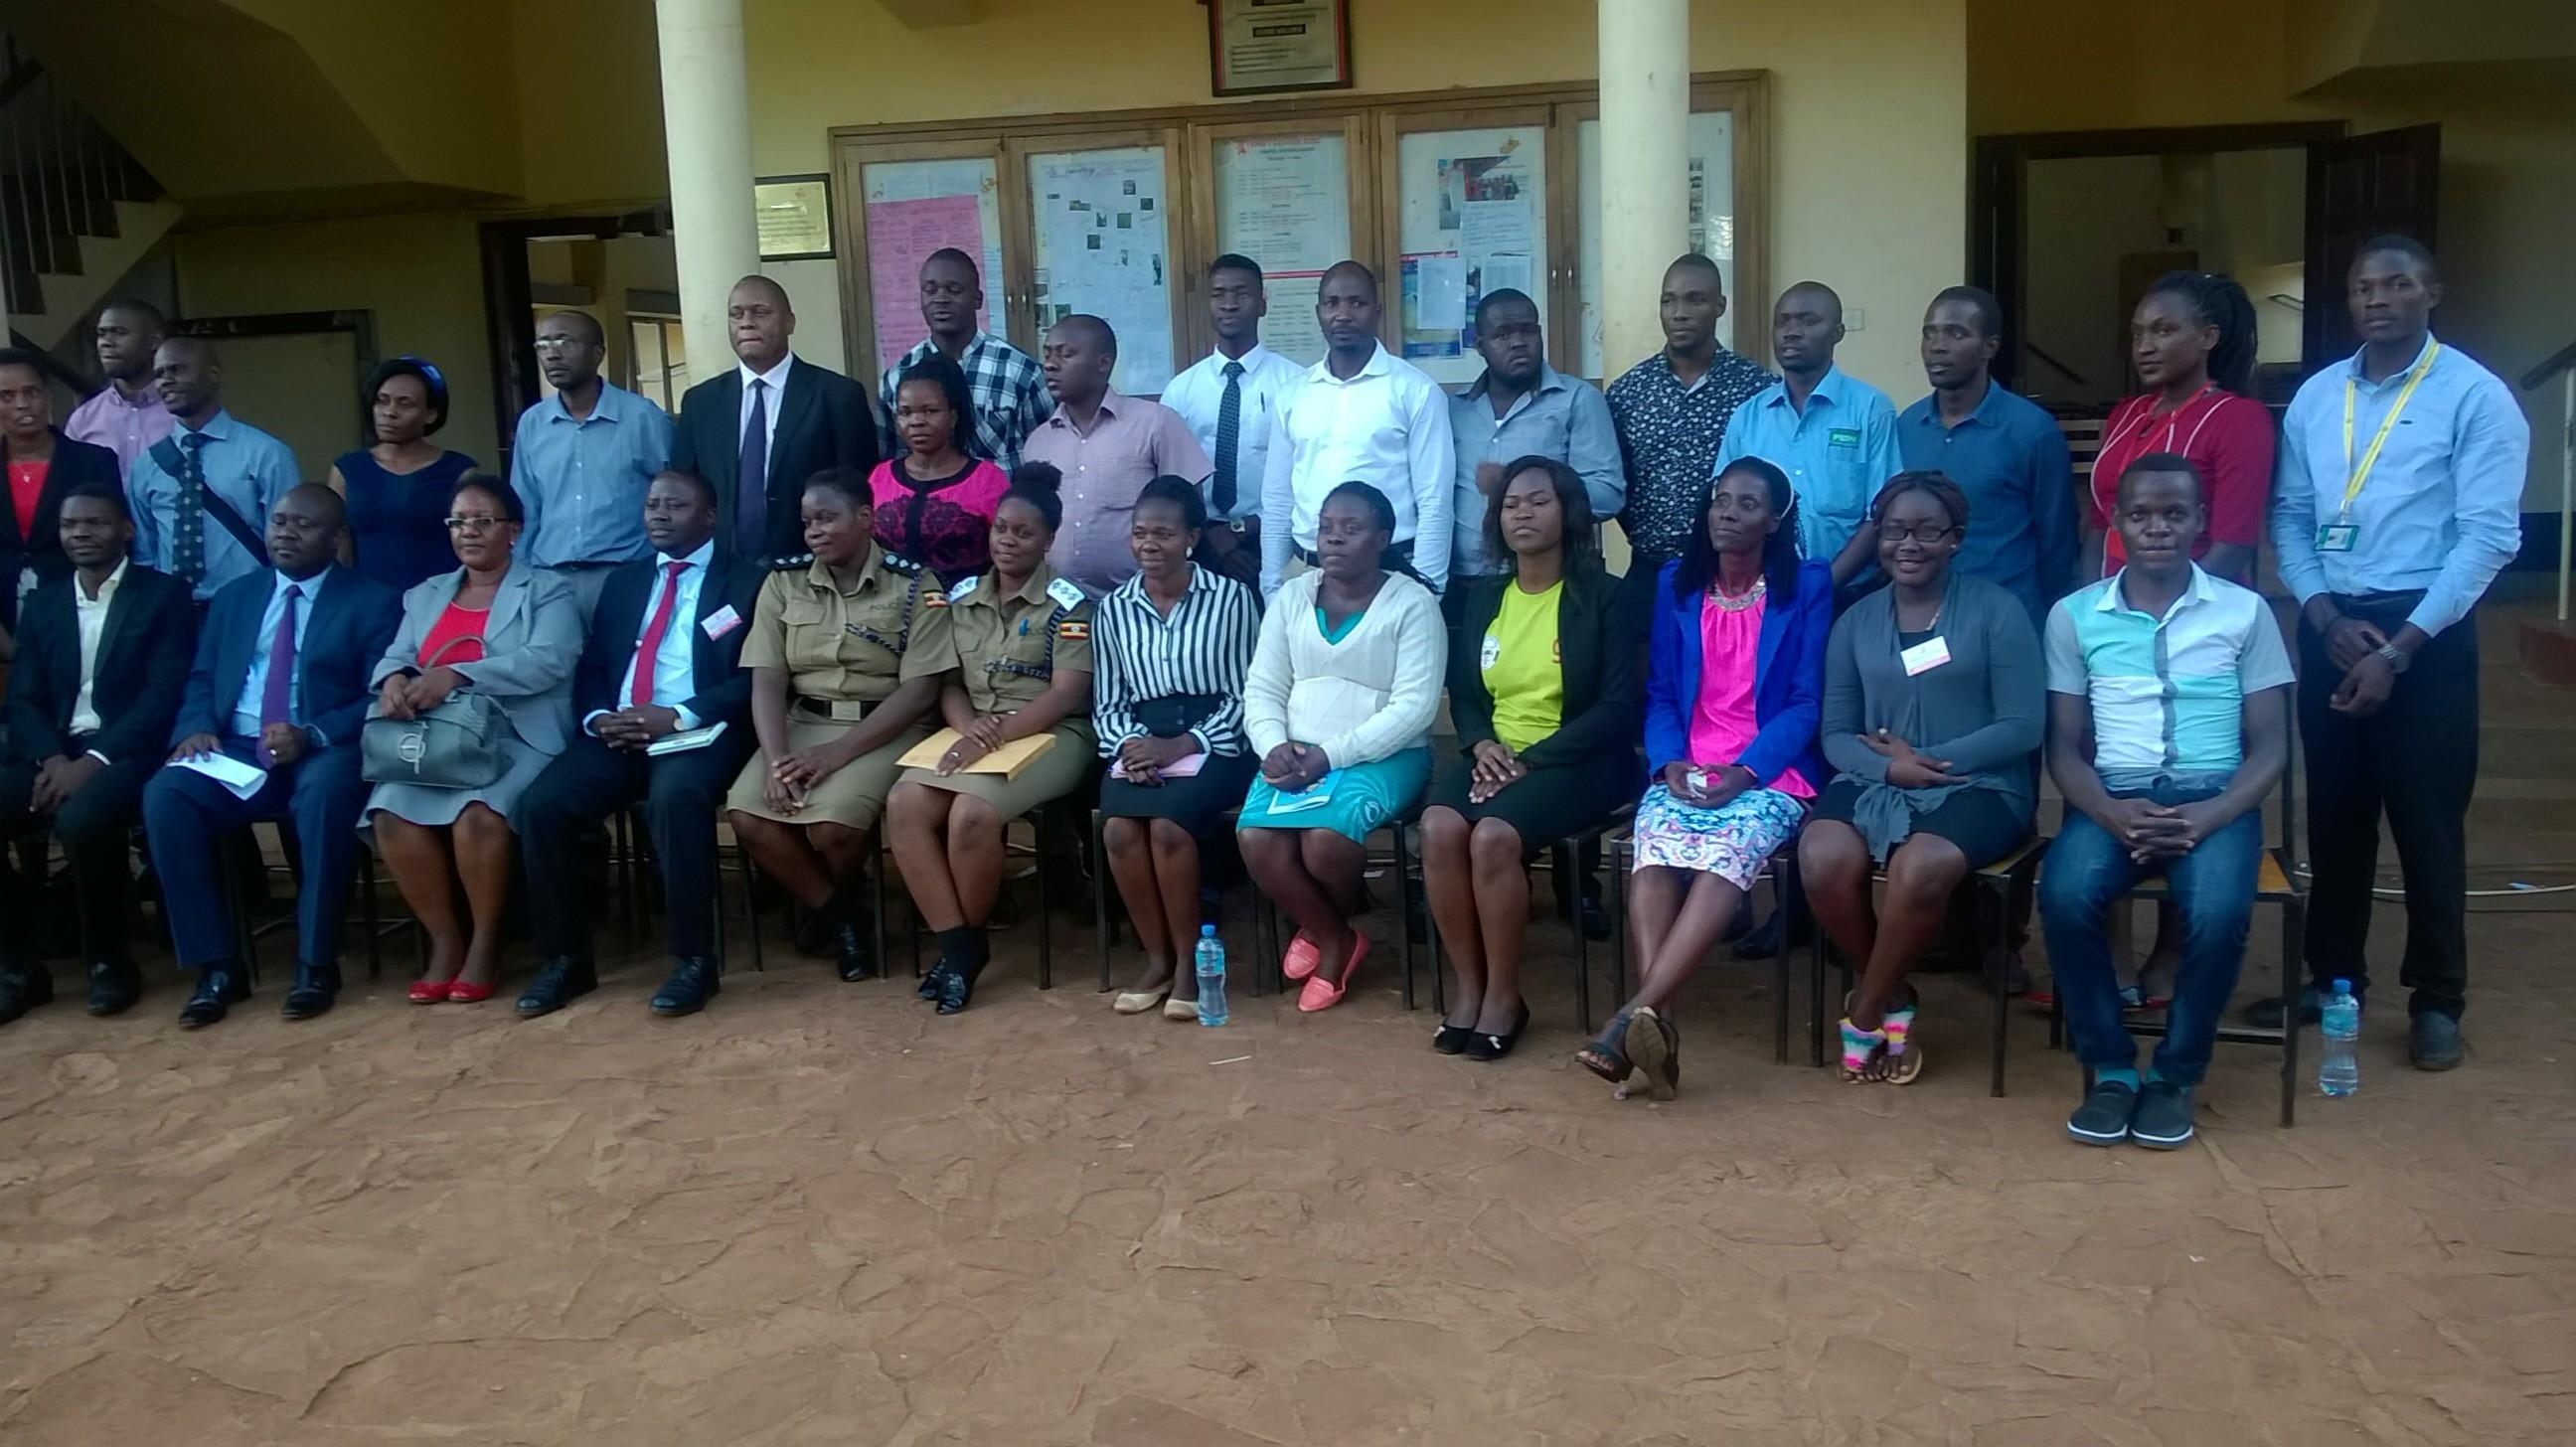 Exhibitors of the King`s College Budo 2018 Careers Day.